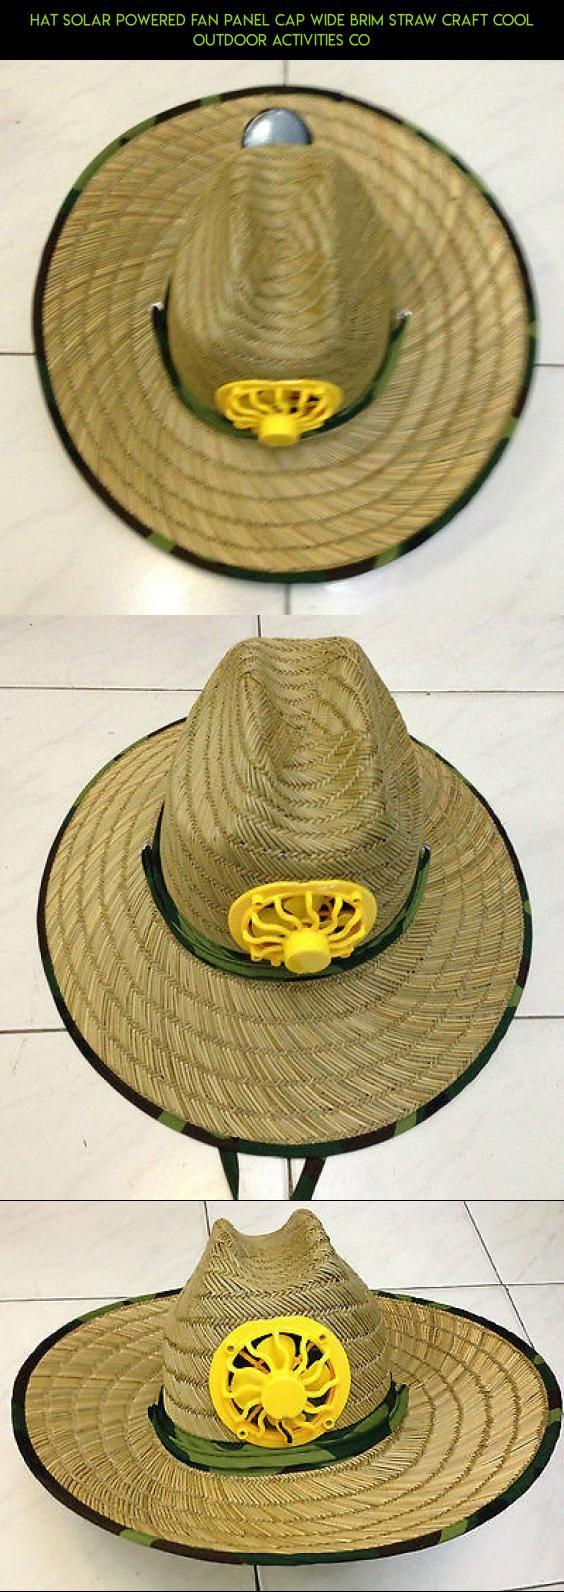 Hat Solar Powered Fan Panel Cap Wide Brim Straw Craft Cool Outdoor Activities Co #gadgets #parts #camera #tech #cooling #plans #outdoor #hat #racing #fpv #drone #technology #kit #shopping #products